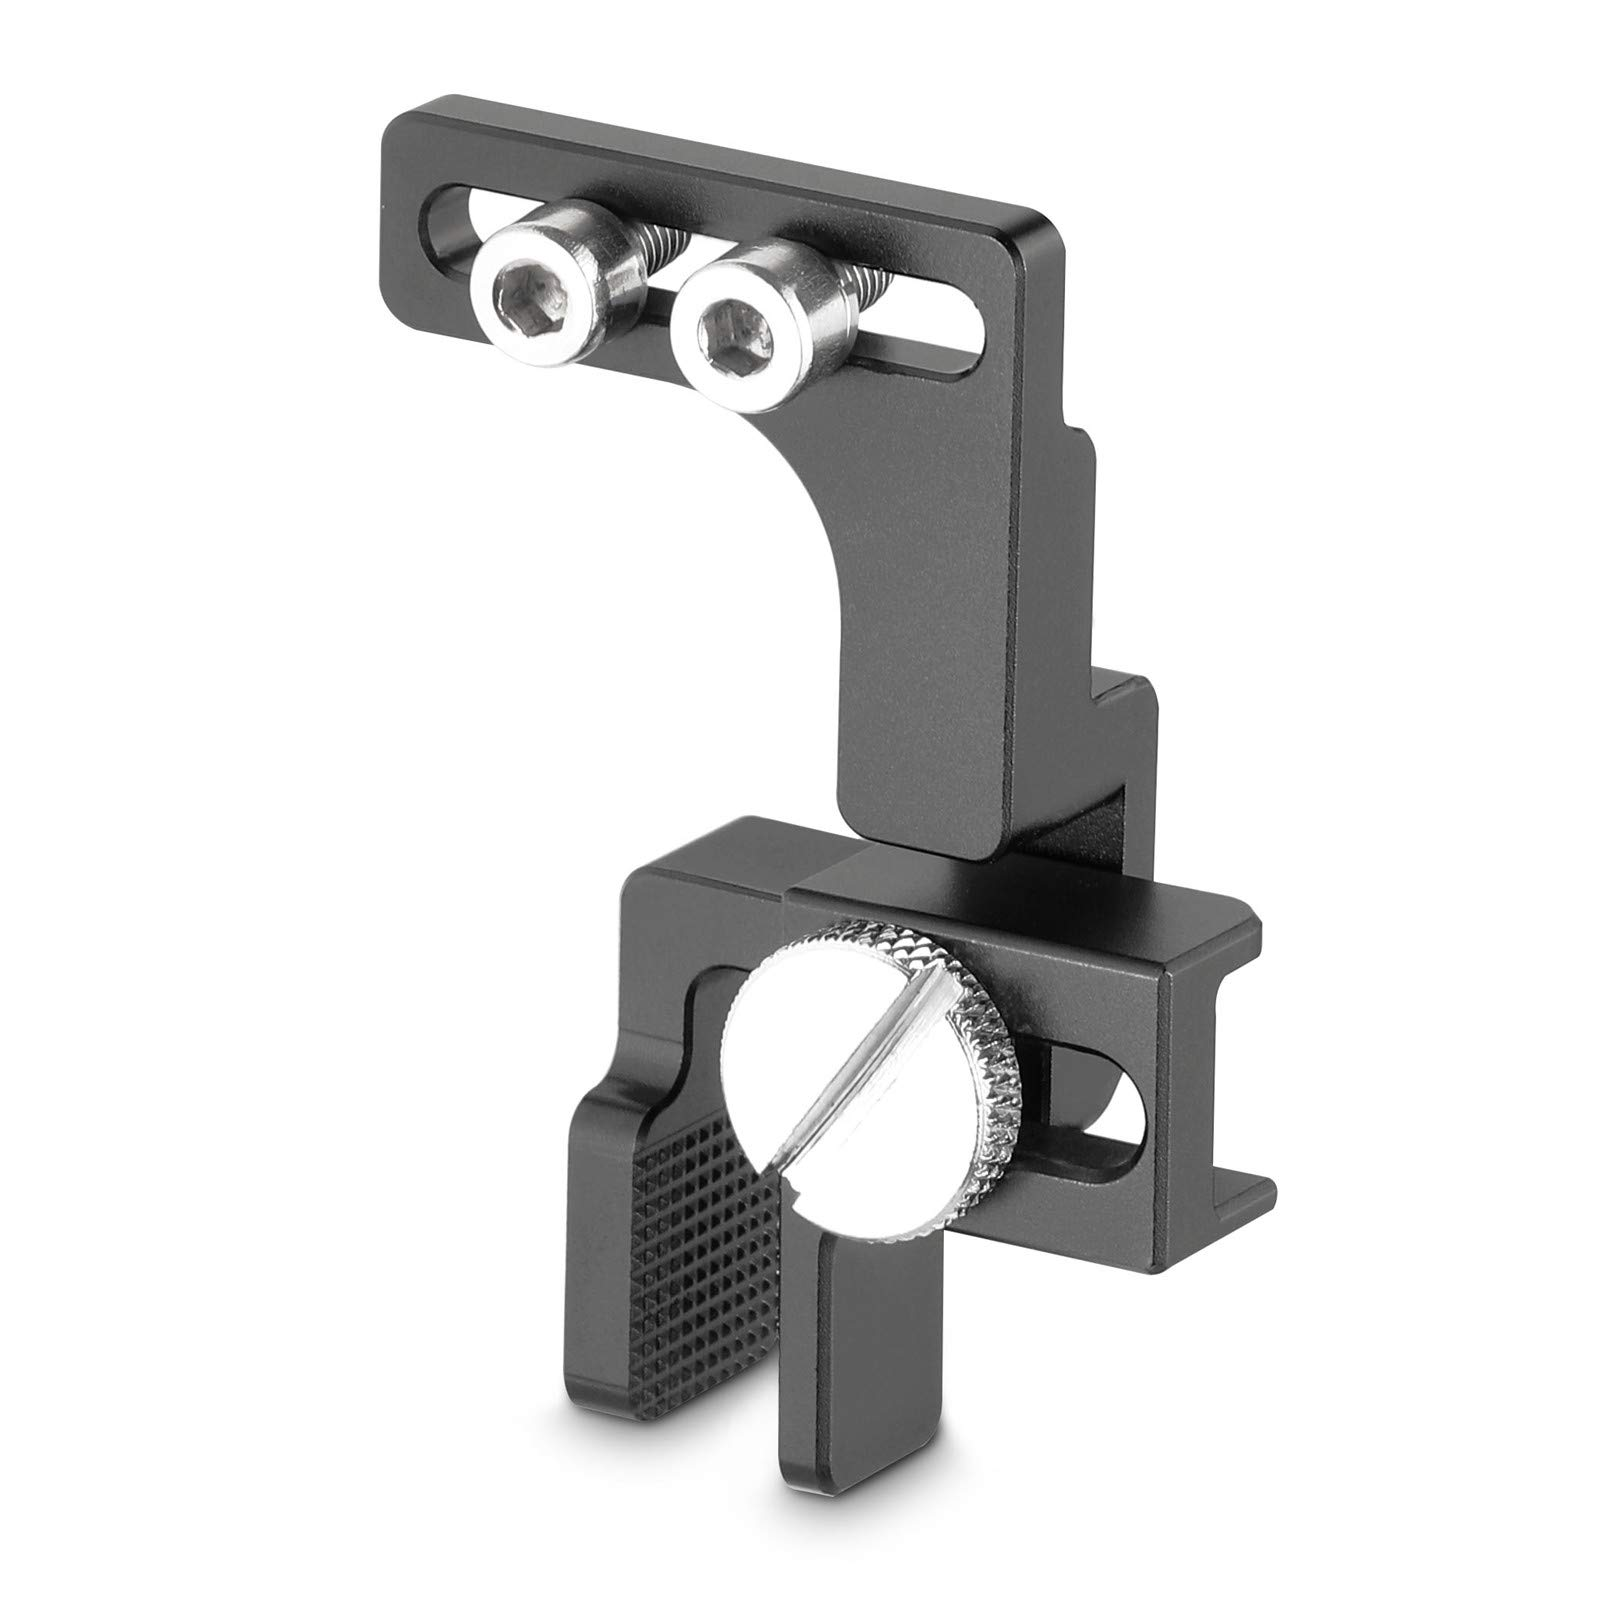 Smallrig 2156 Hdmi Cable Clamp For Fuji X-h1 And Fuji X-t..